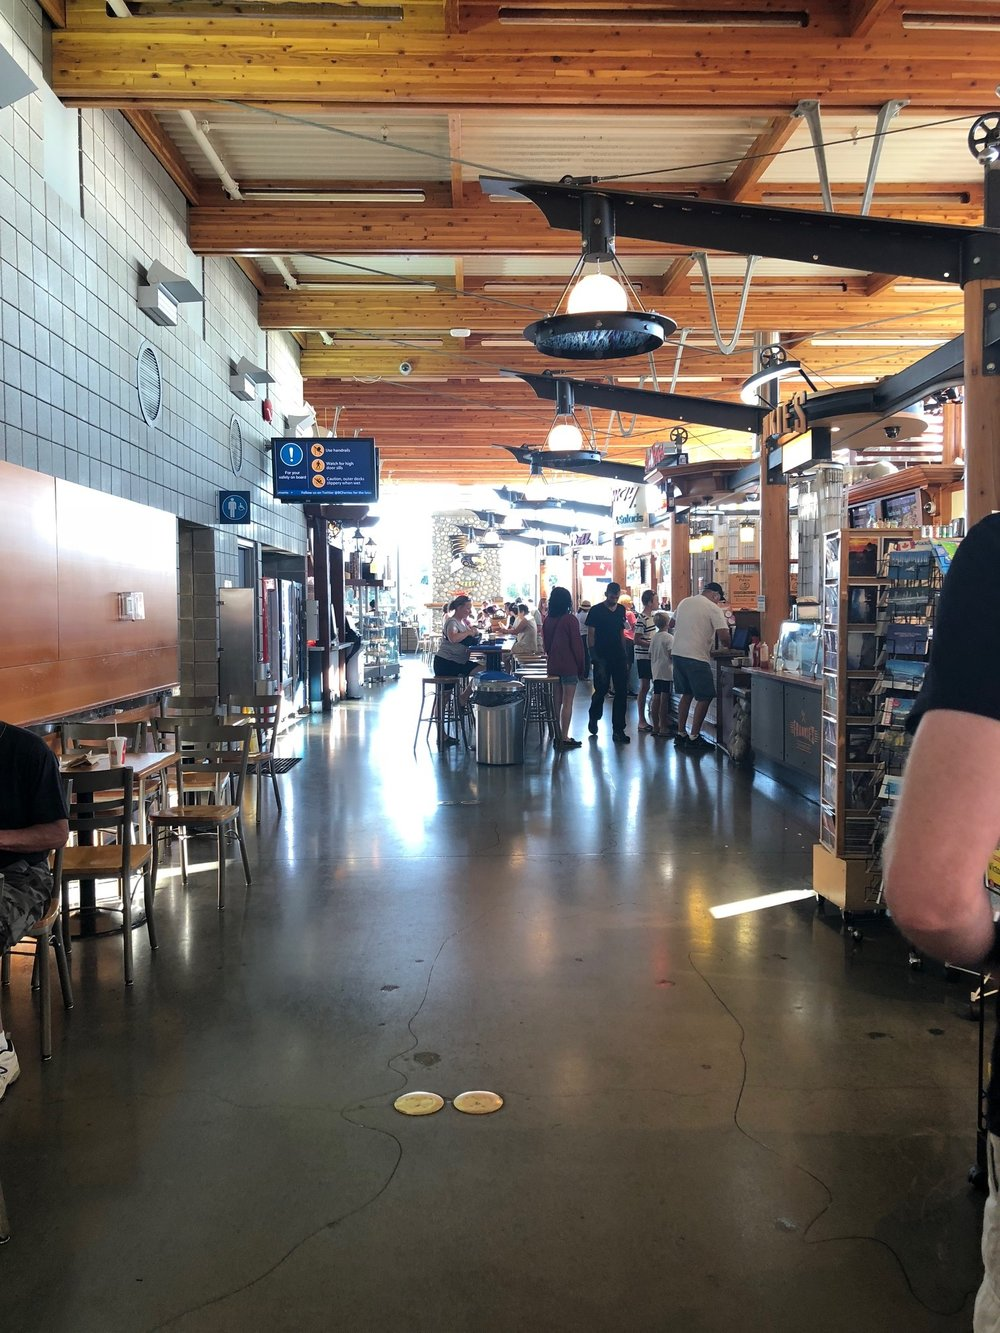 The Tsawassen ferry terminal food court